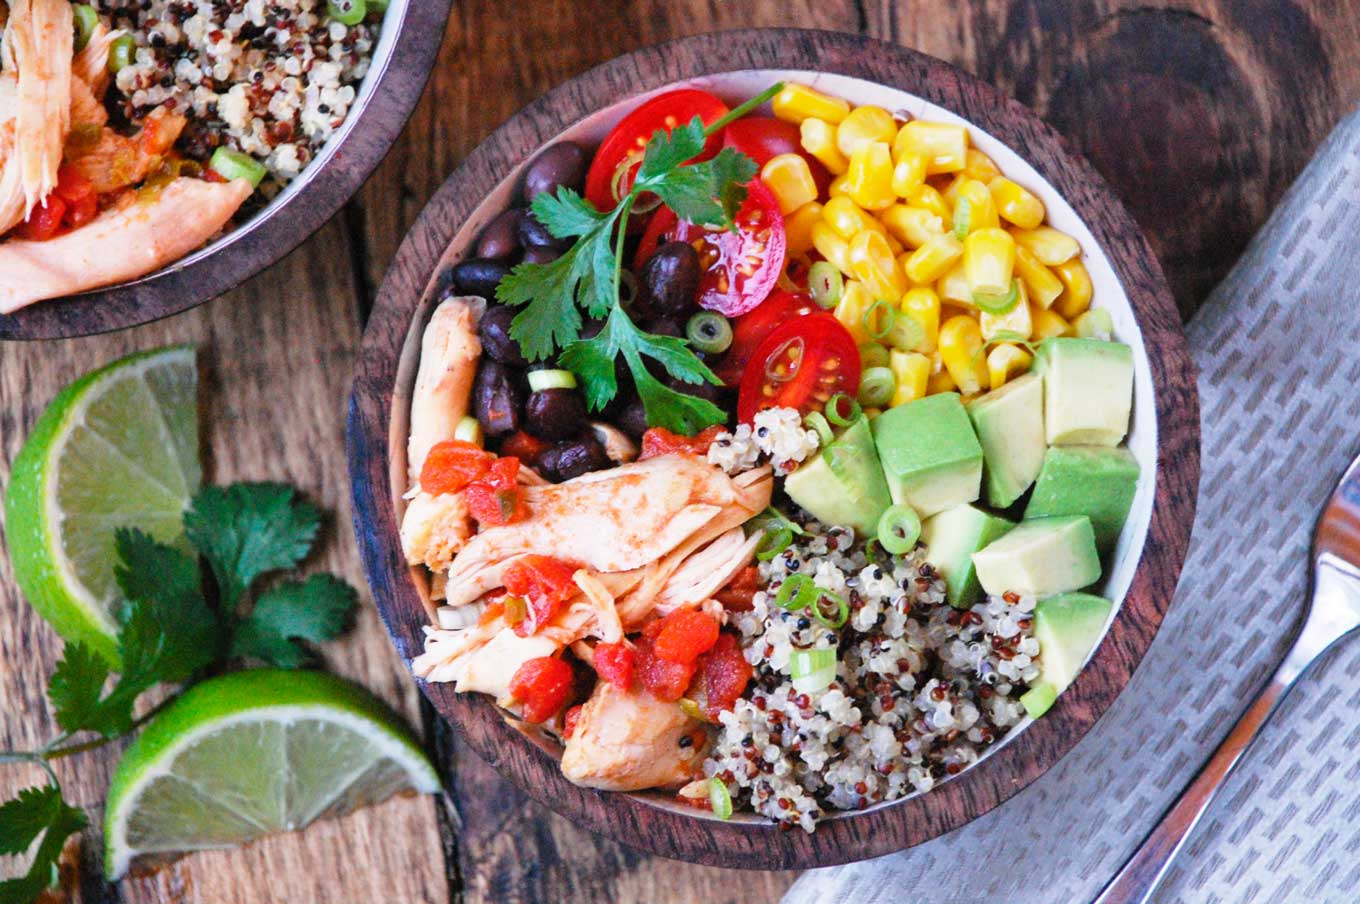 These high-protein Instant Pot Chicken and Quinoa Bowls from Lauren at Meals, Heels & Cocktails is just one of 20 terrific chicken dinners you can make quickly and easily in your electric pressure cooker! Be sure to check them all out … and then get cookin'!